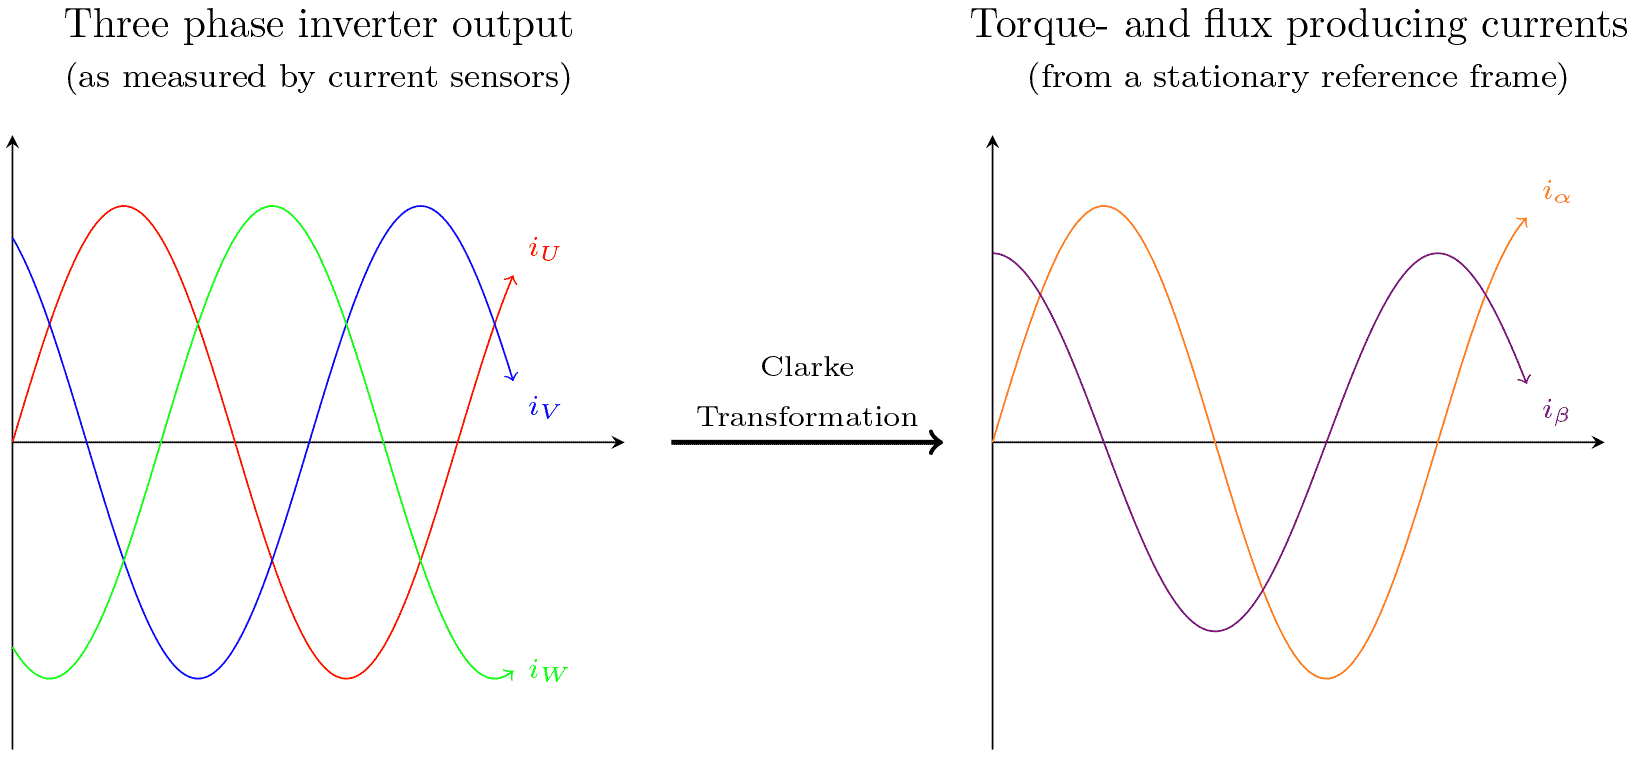 The Clarke transform creates two orthogonal currents from a three phased measurement. The two new currents represent torque producing and magnetic field producing currents.